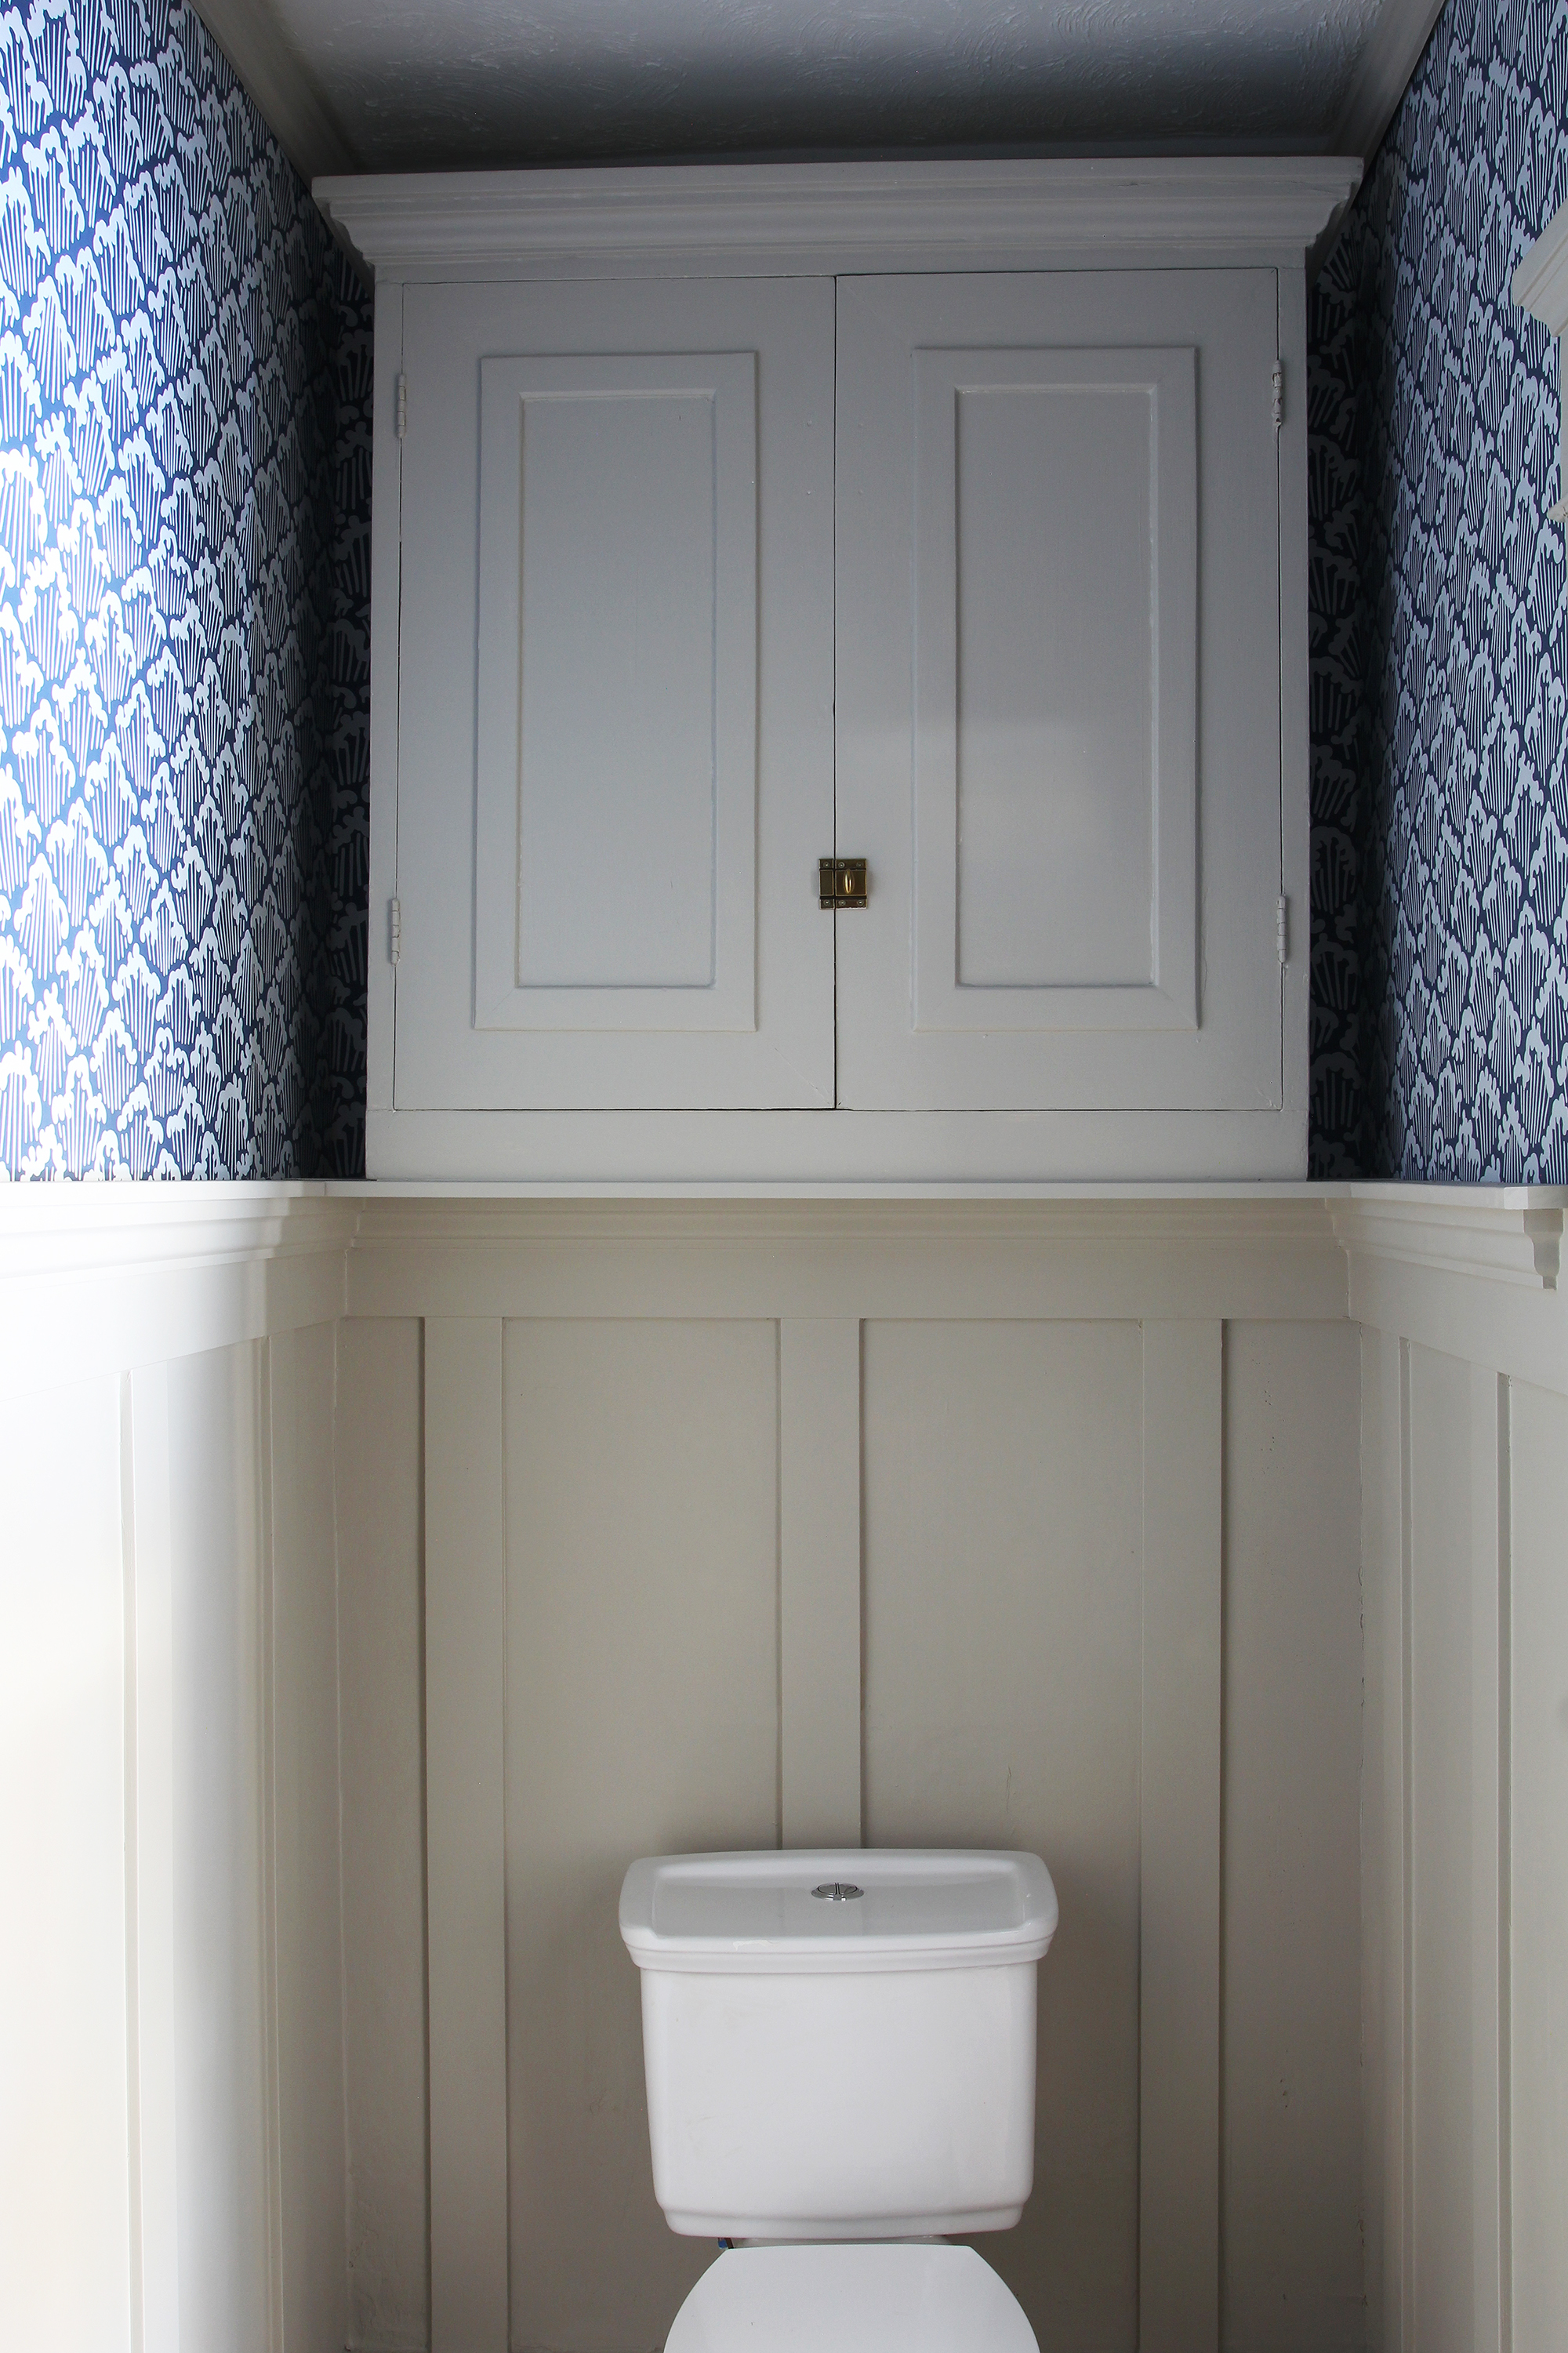 The Grit and Polish - Porch Powder Bathroom cabinet